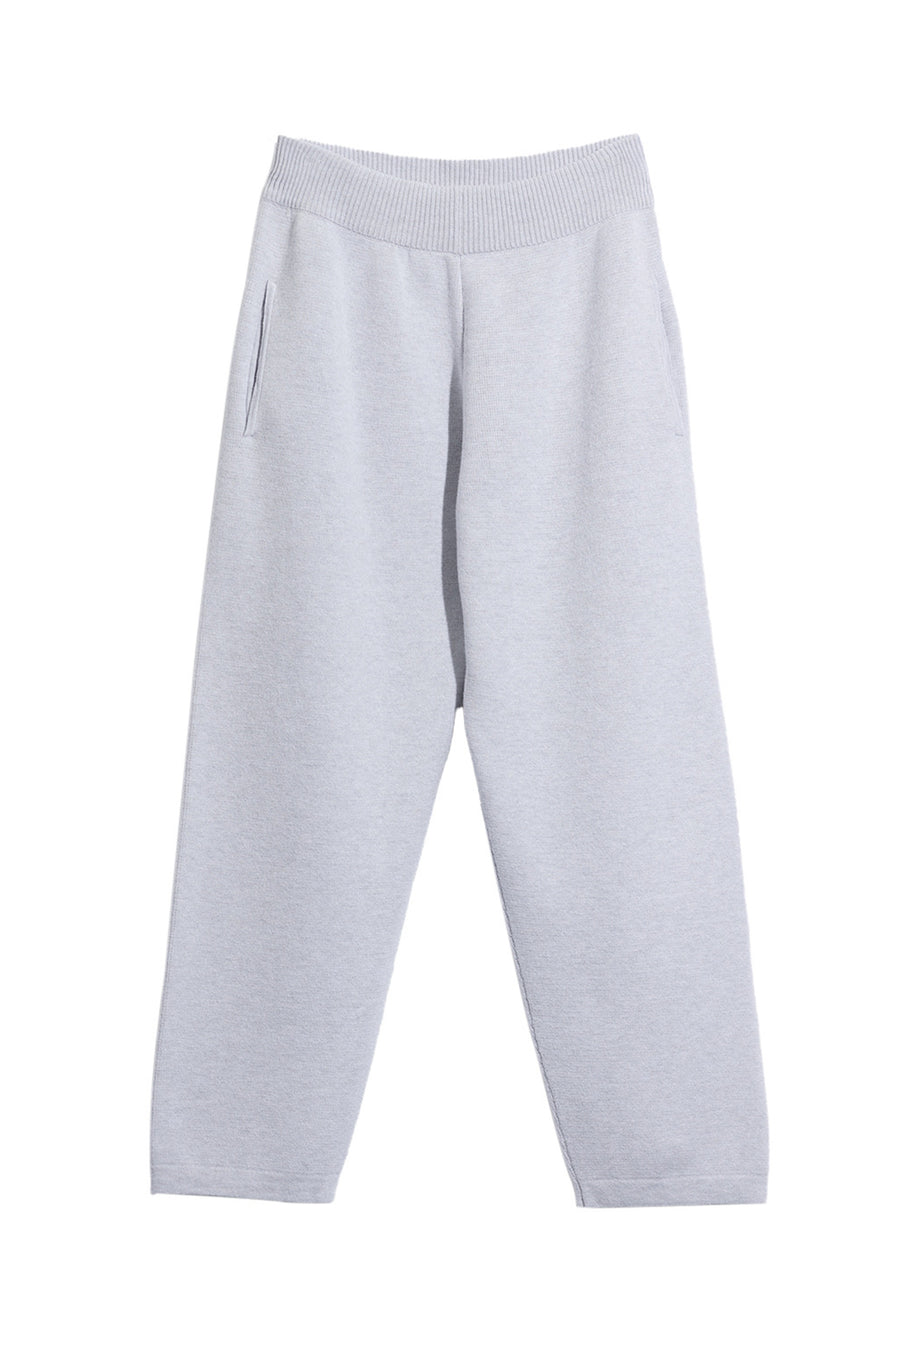 Cashmere Sportswear Jogging Bottoms in Grey Calcite